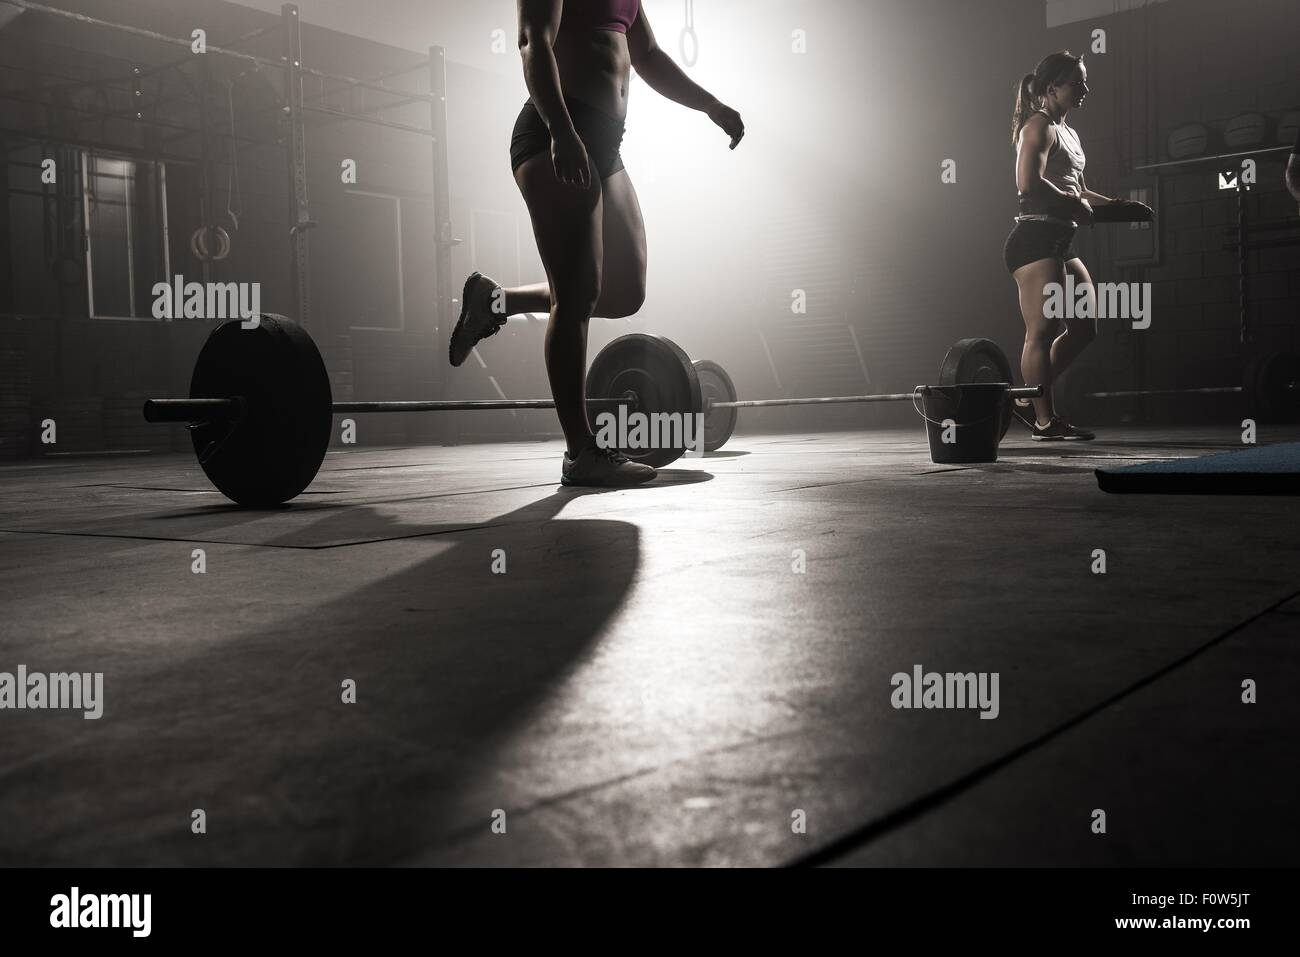 Two young women working out in gym - Stock Image